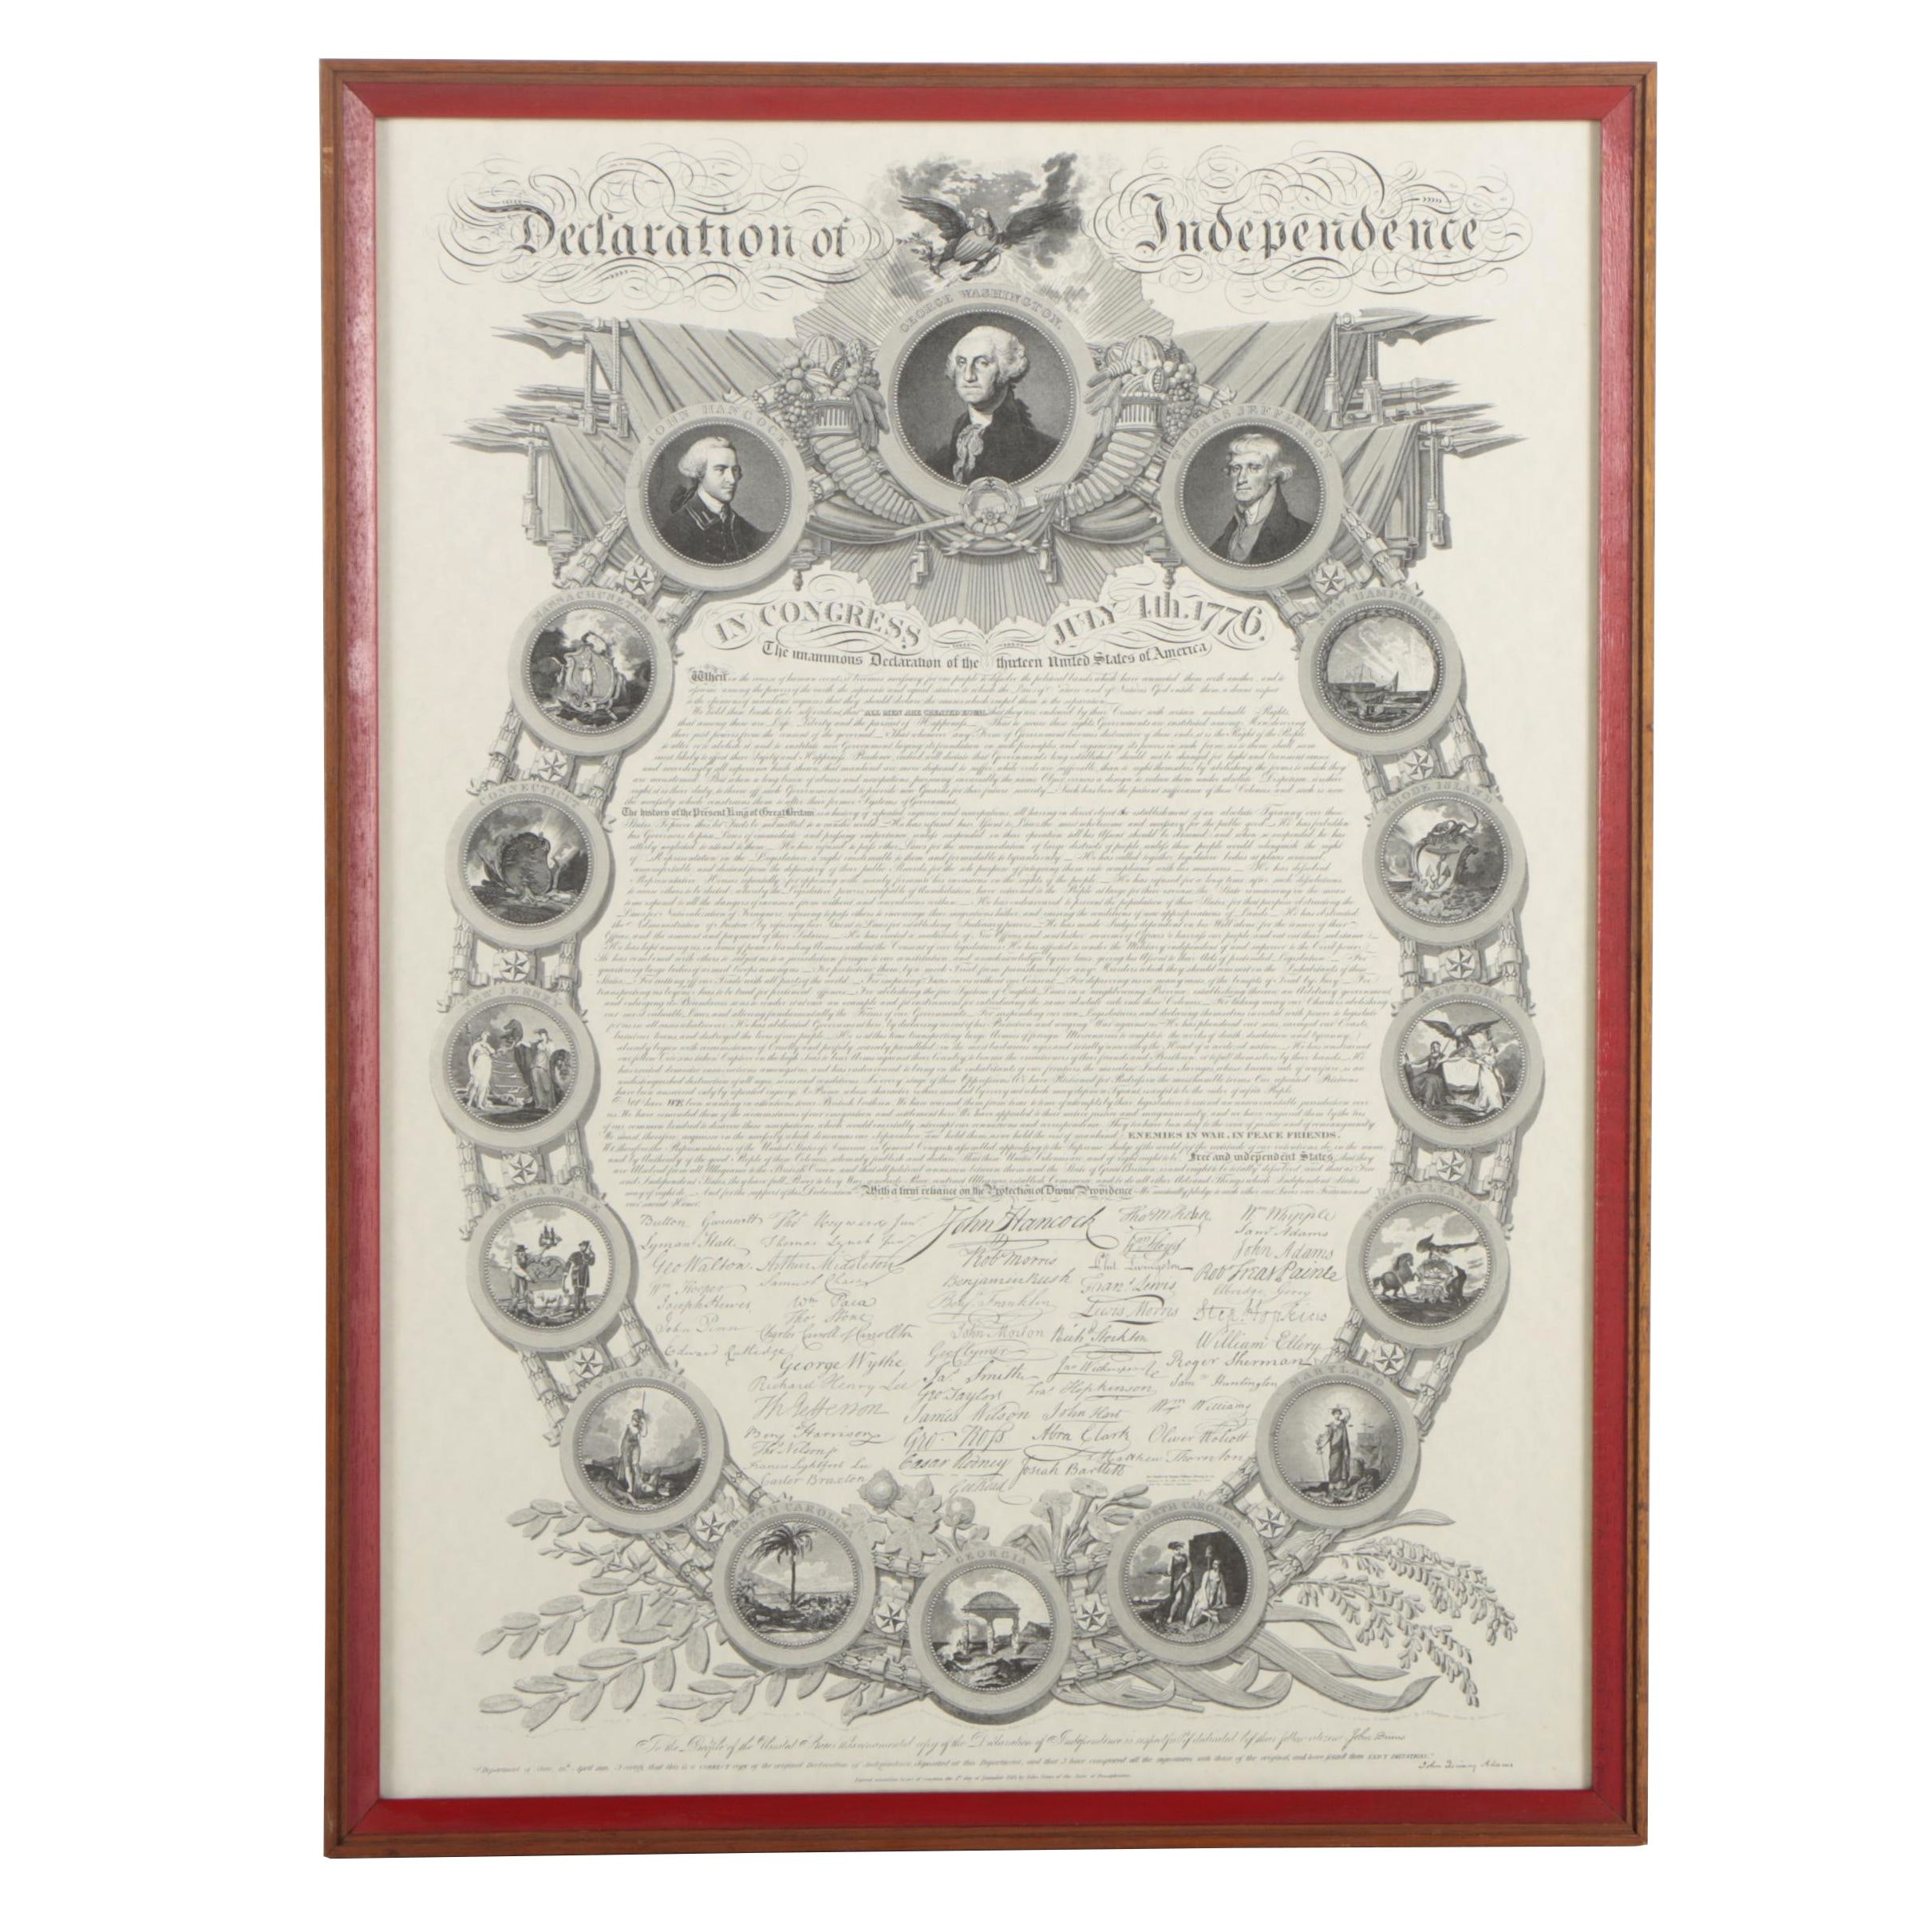 Lithograph of the Declaration of Independence